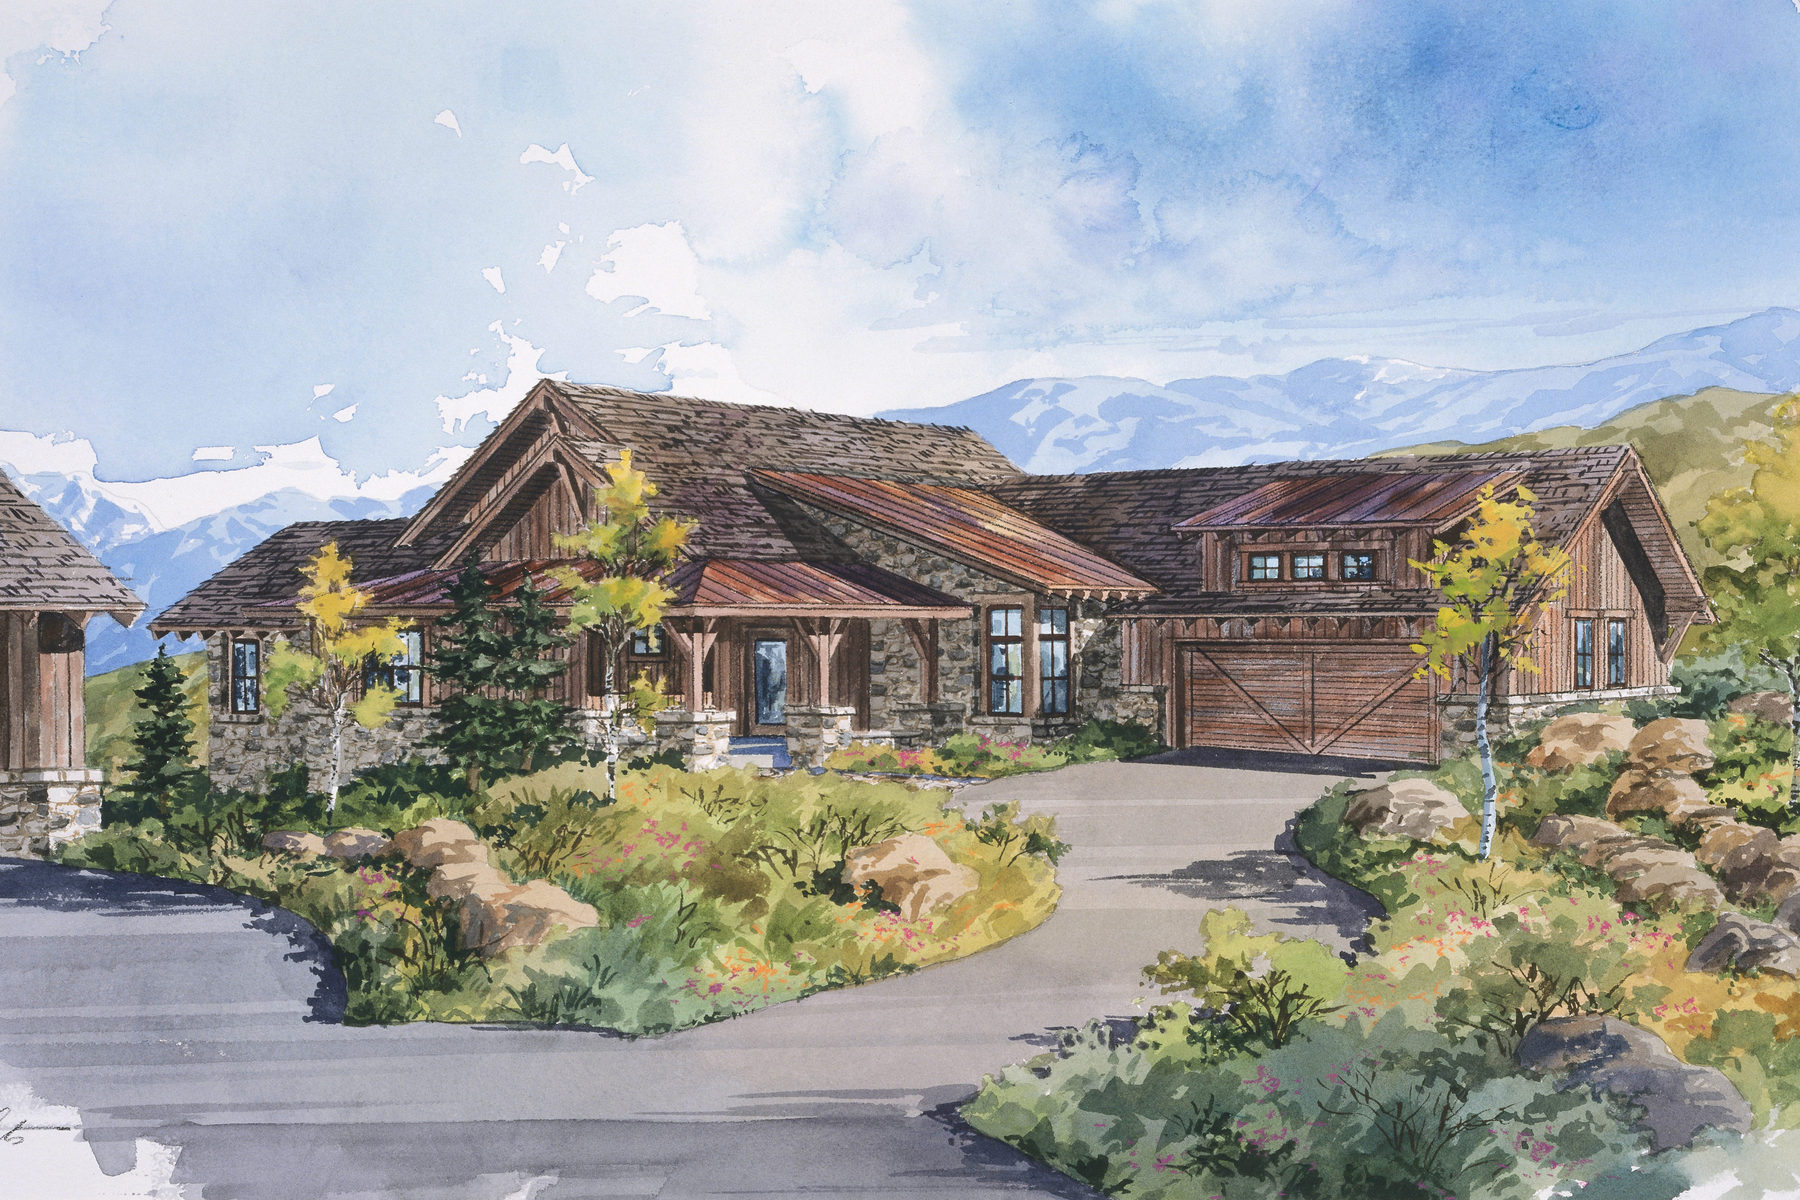 Villa per Vendita alle ore Park City Cabin in Promontory A Private Mountain Golf Recreational Community 3809 Cynthia Cir Lot 24 Park City, Utah, 84098 Stati Uniti